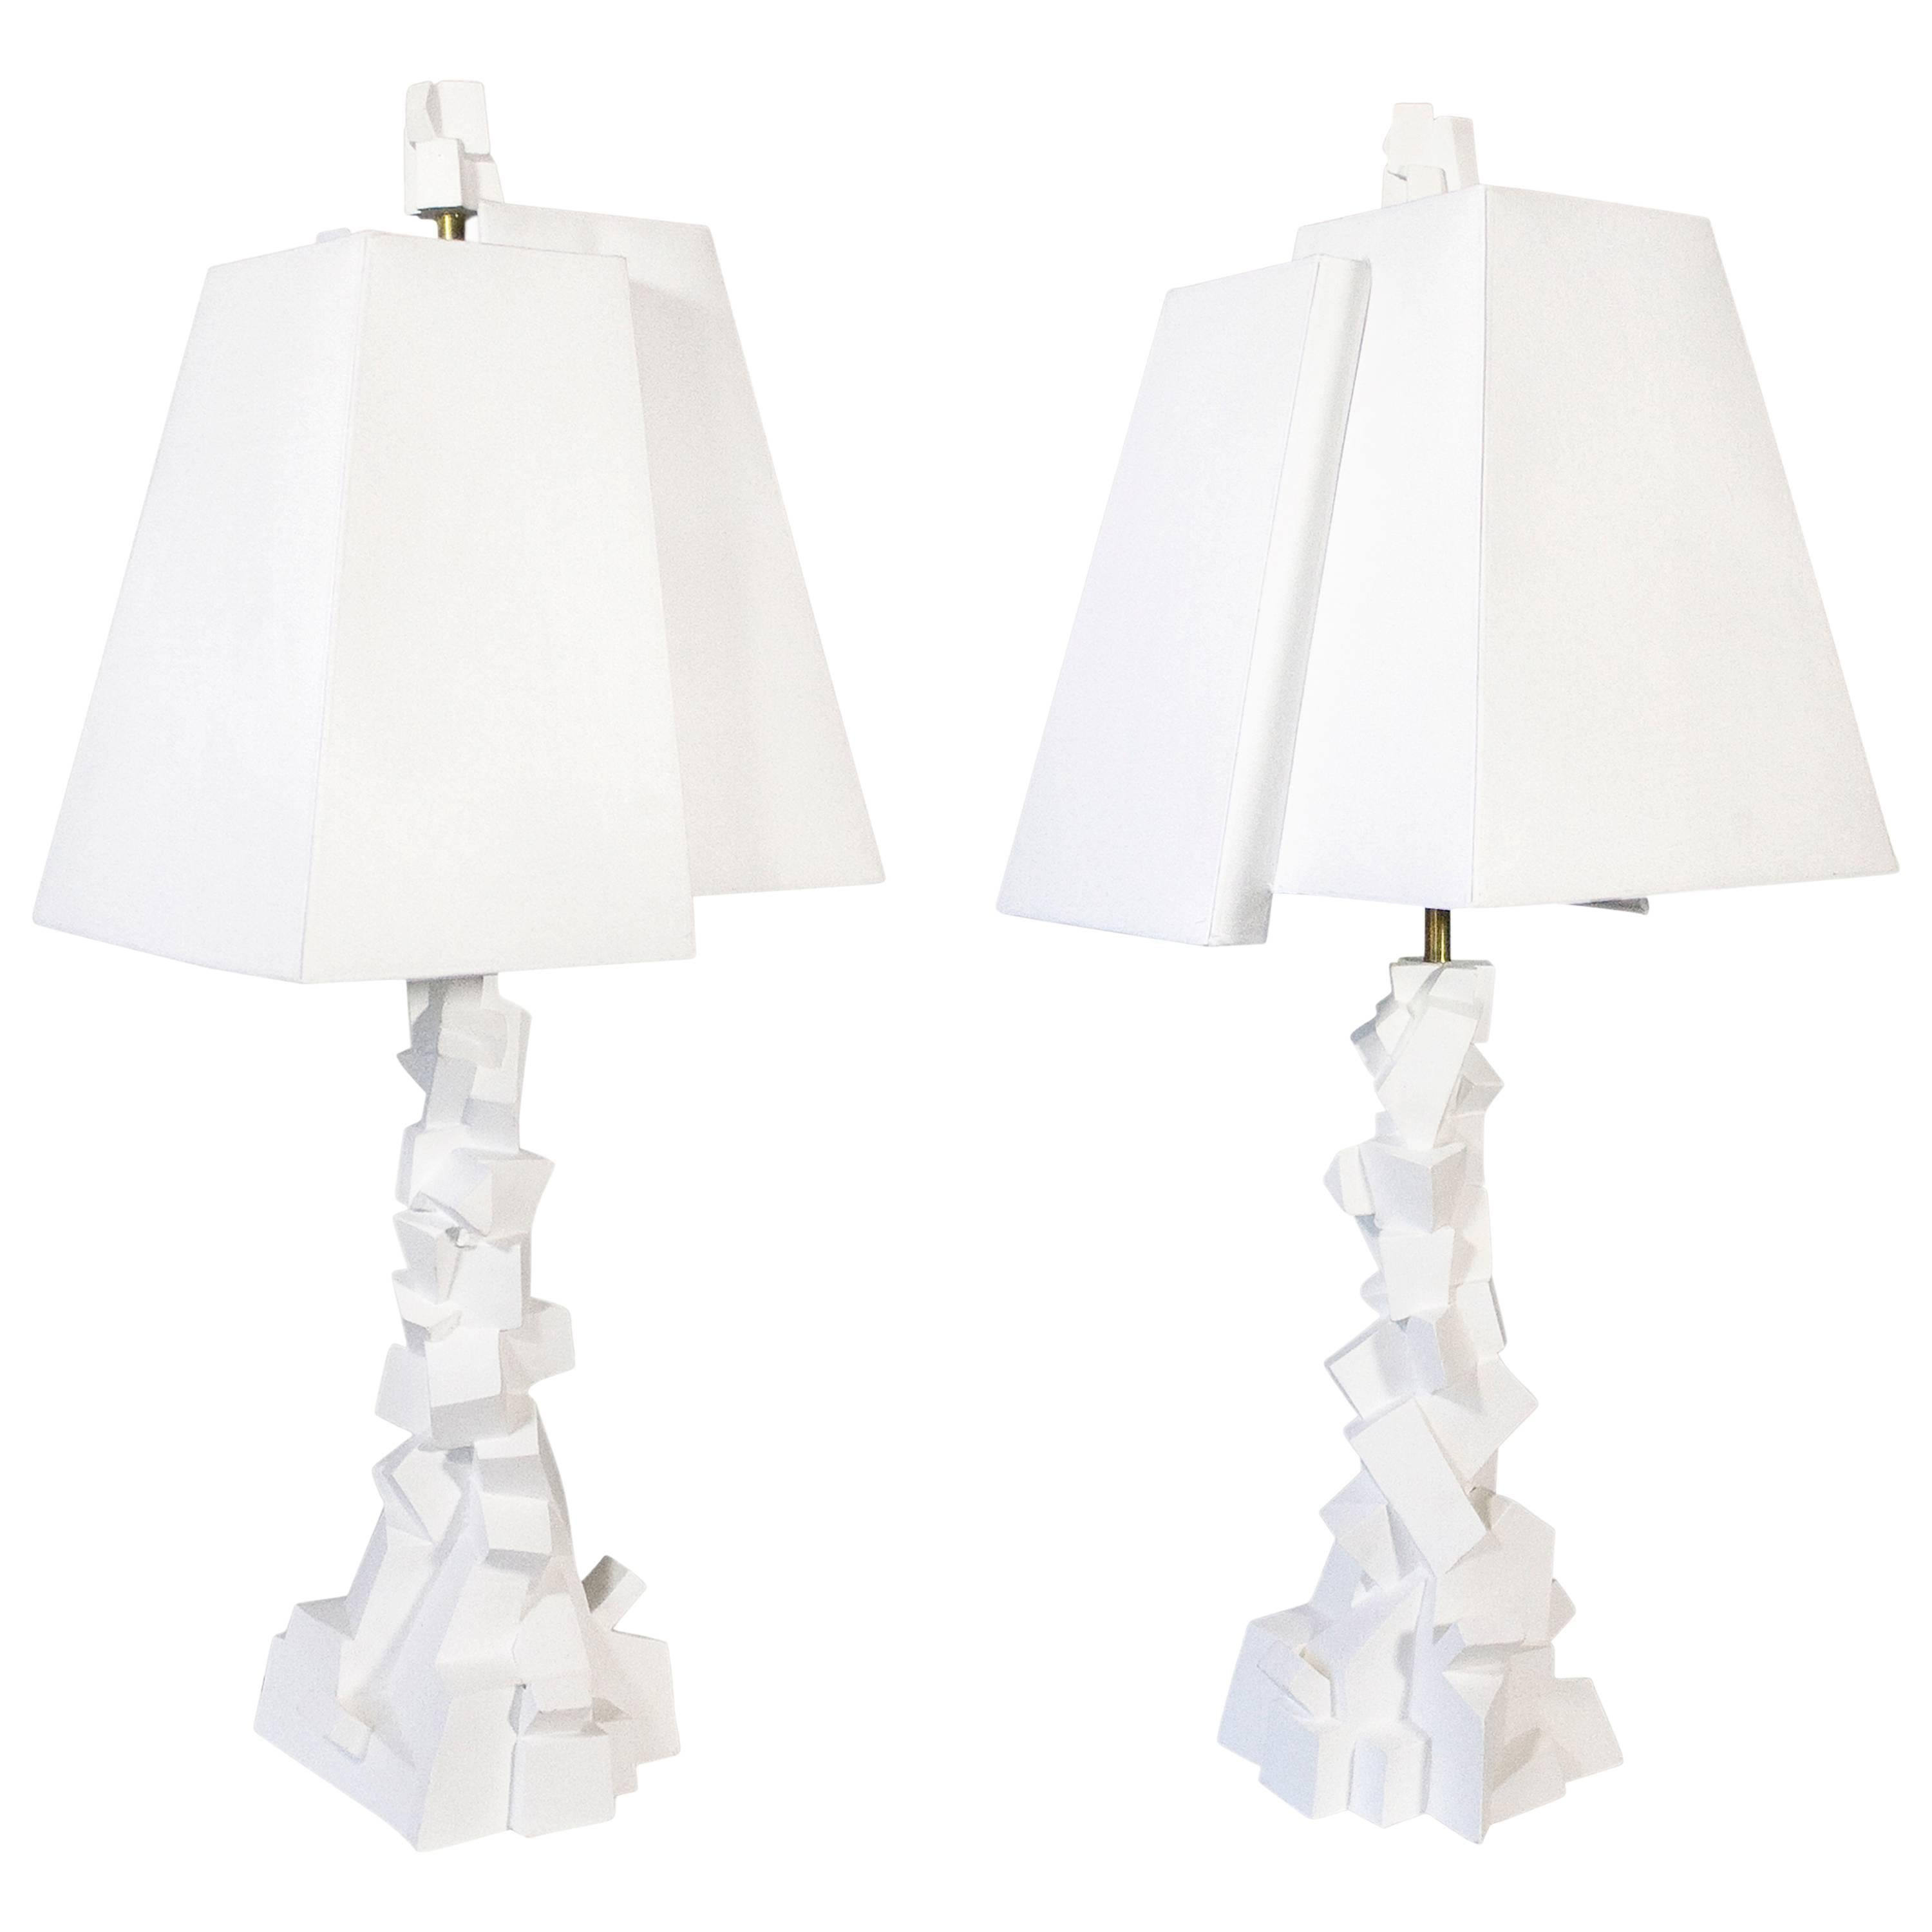 Pair of Jean-Jacques Darbaud Plaster Brutalist Table Lamps, France, circa 2015